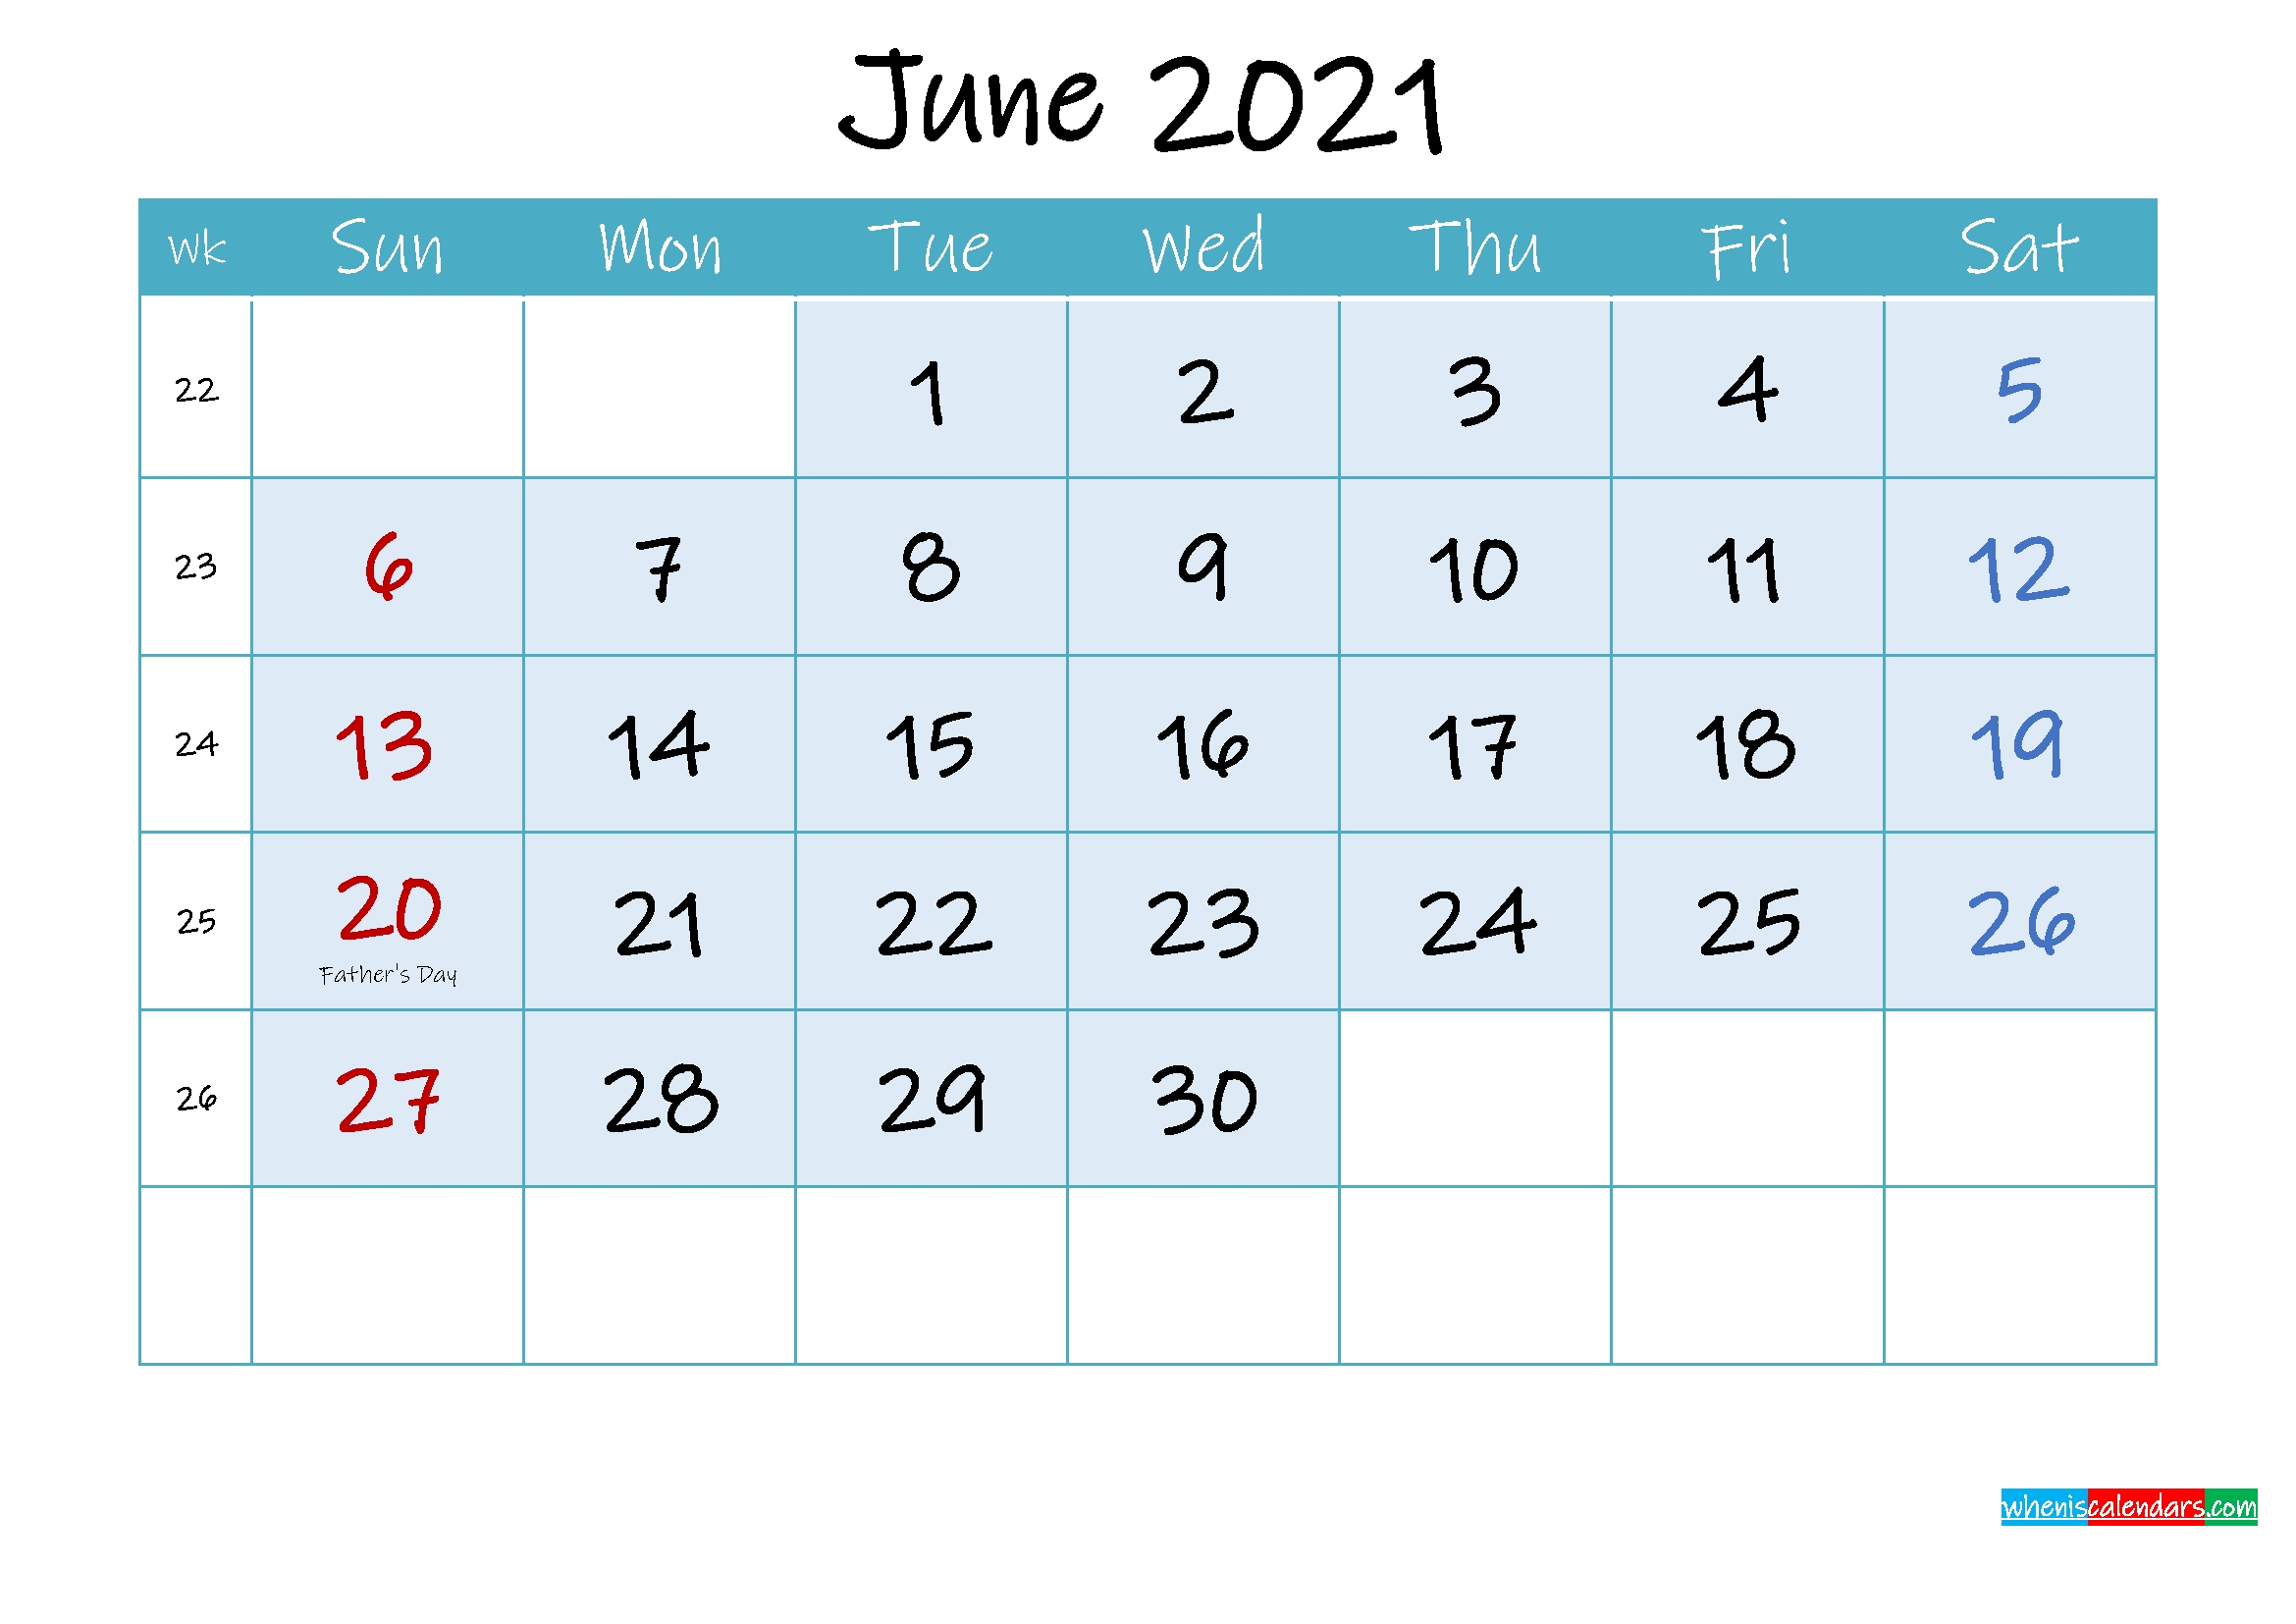 Free Printable 2021 Monthly Calendar With Holidays June 2021 Calendar With Holidays Printable